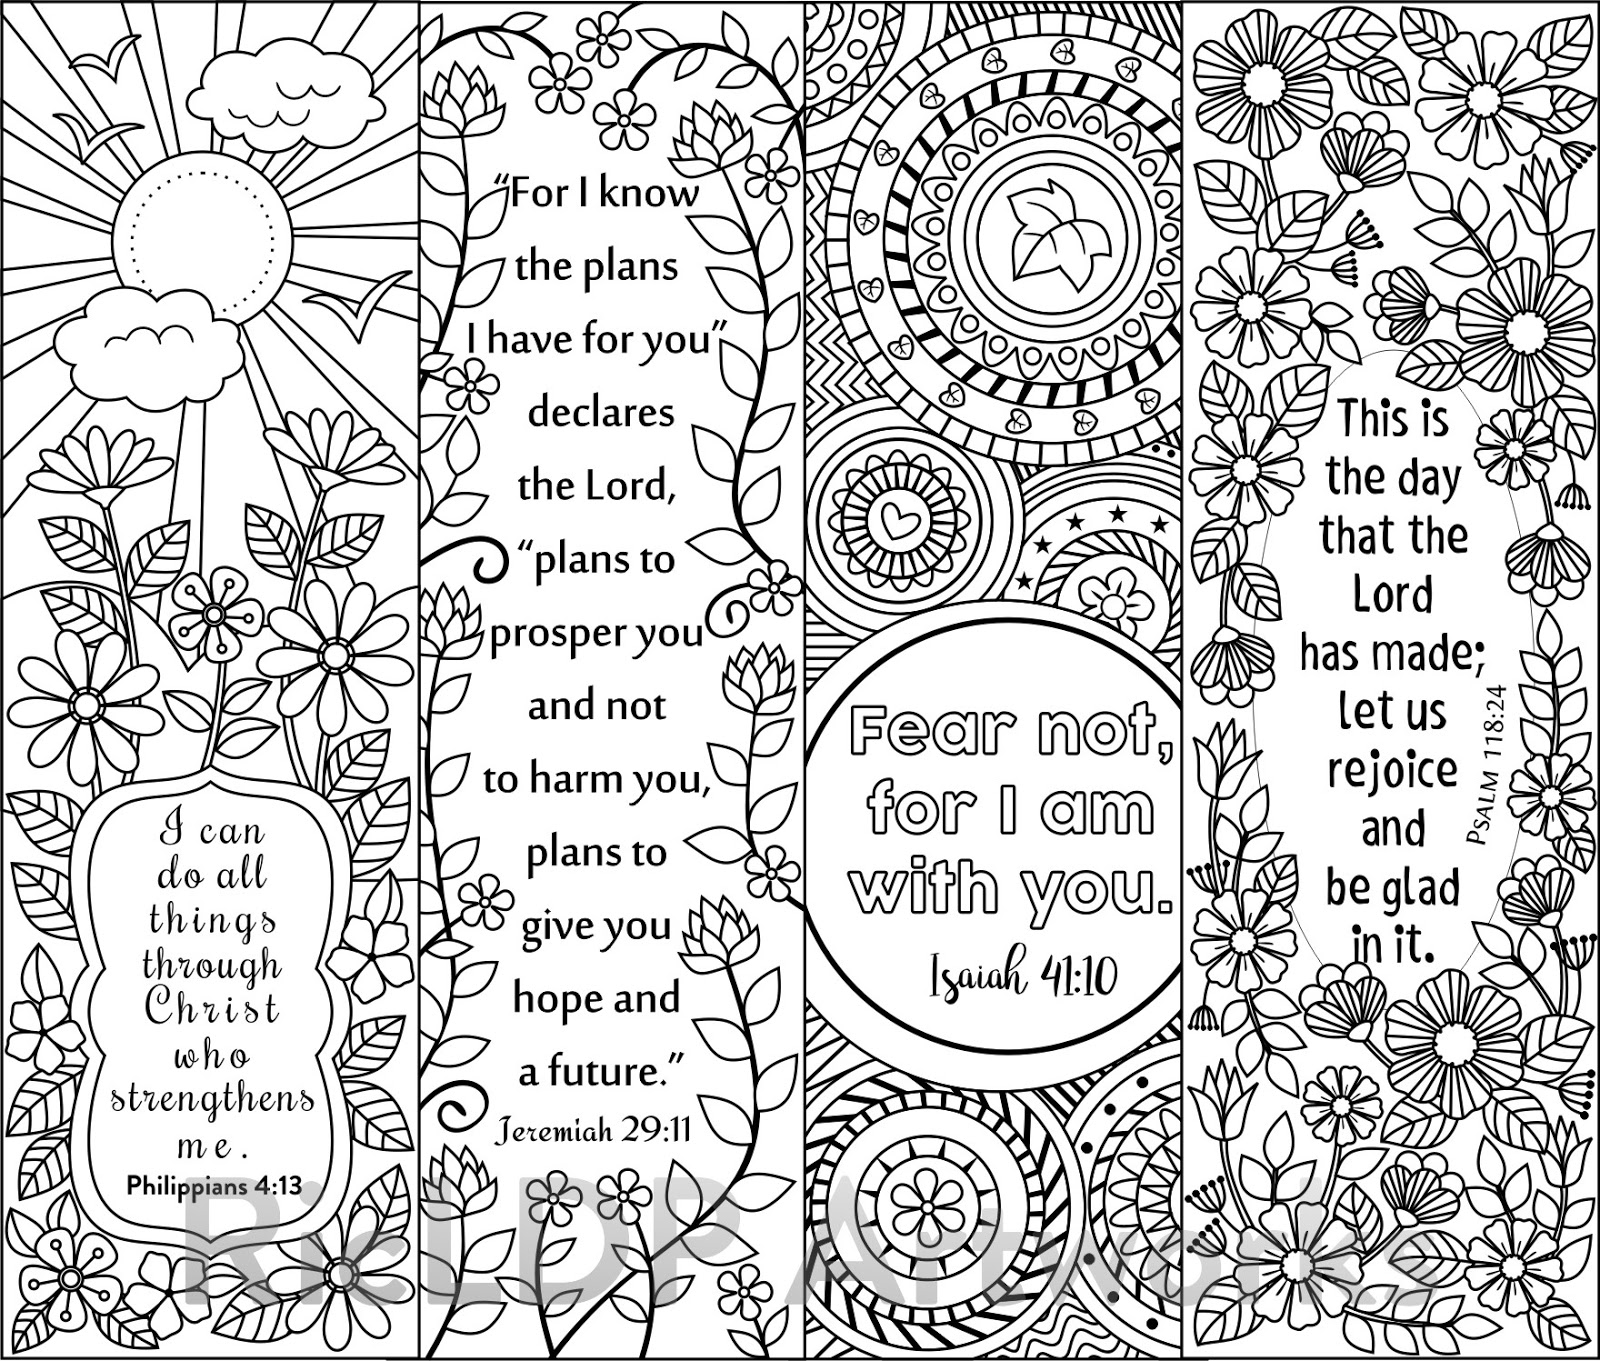 coloring bible verse bookmark 6 bible verse coloring bookmarks plus 3 designs with blank verse bookmark coloring bible